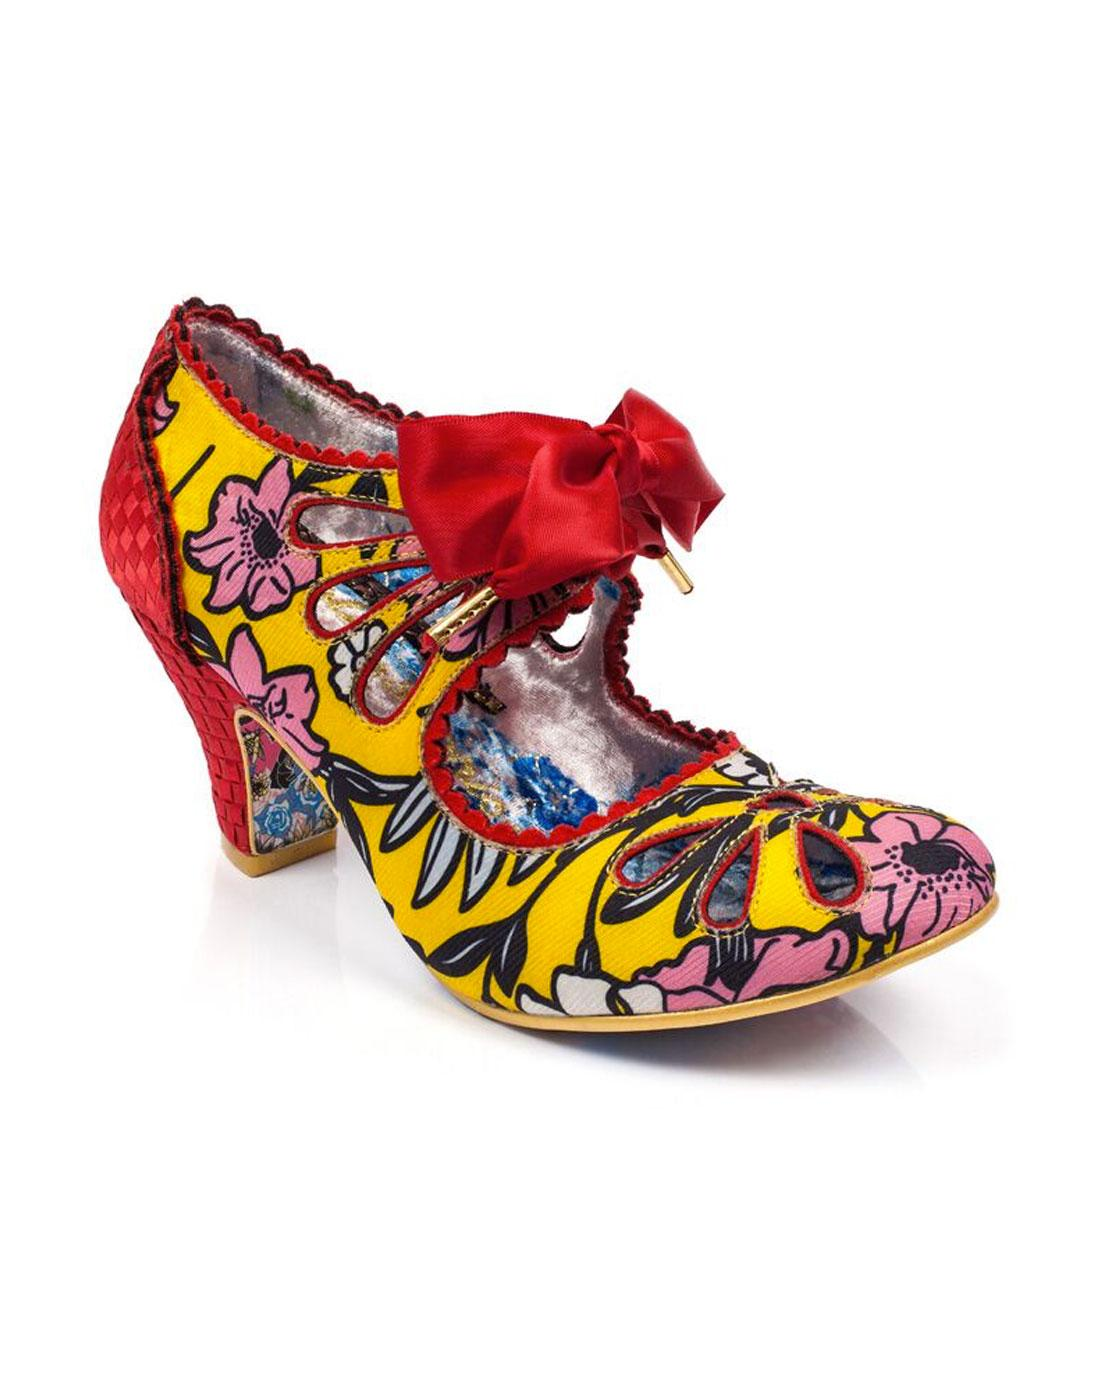 Sugar Plum IRREGULAR CHOICE Floral Heels YELLOW